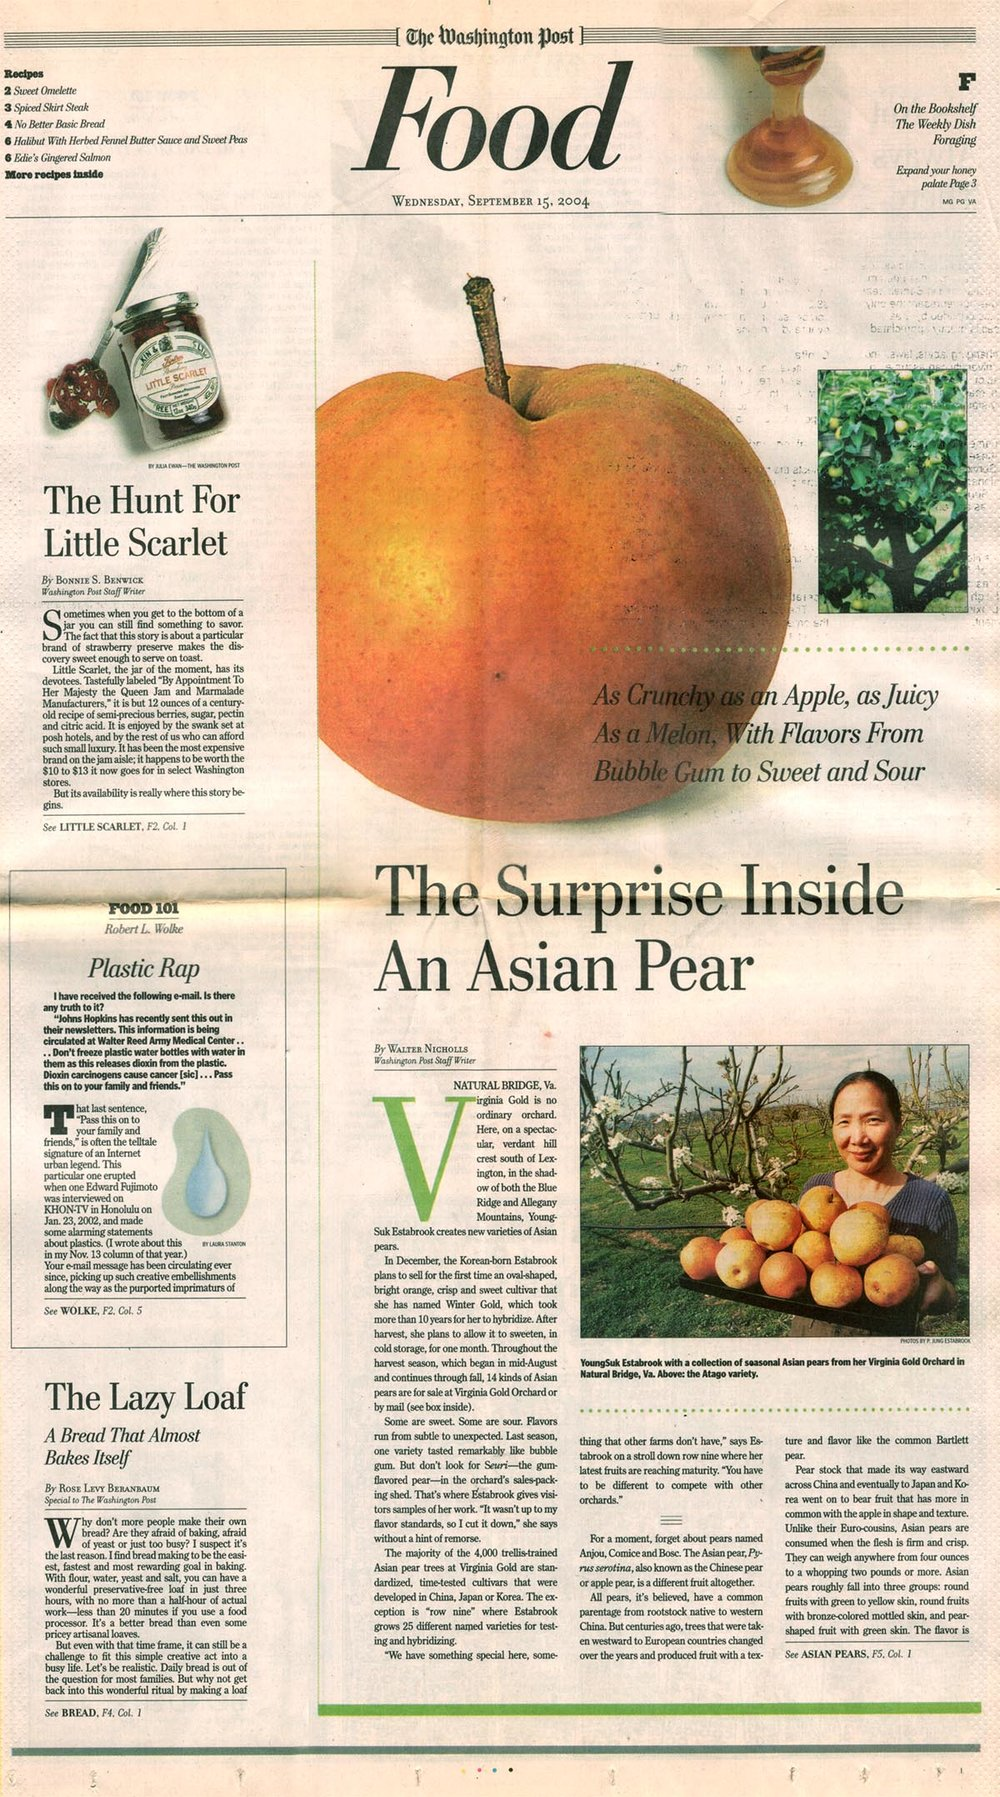 WashPostCover-full-small.jpg